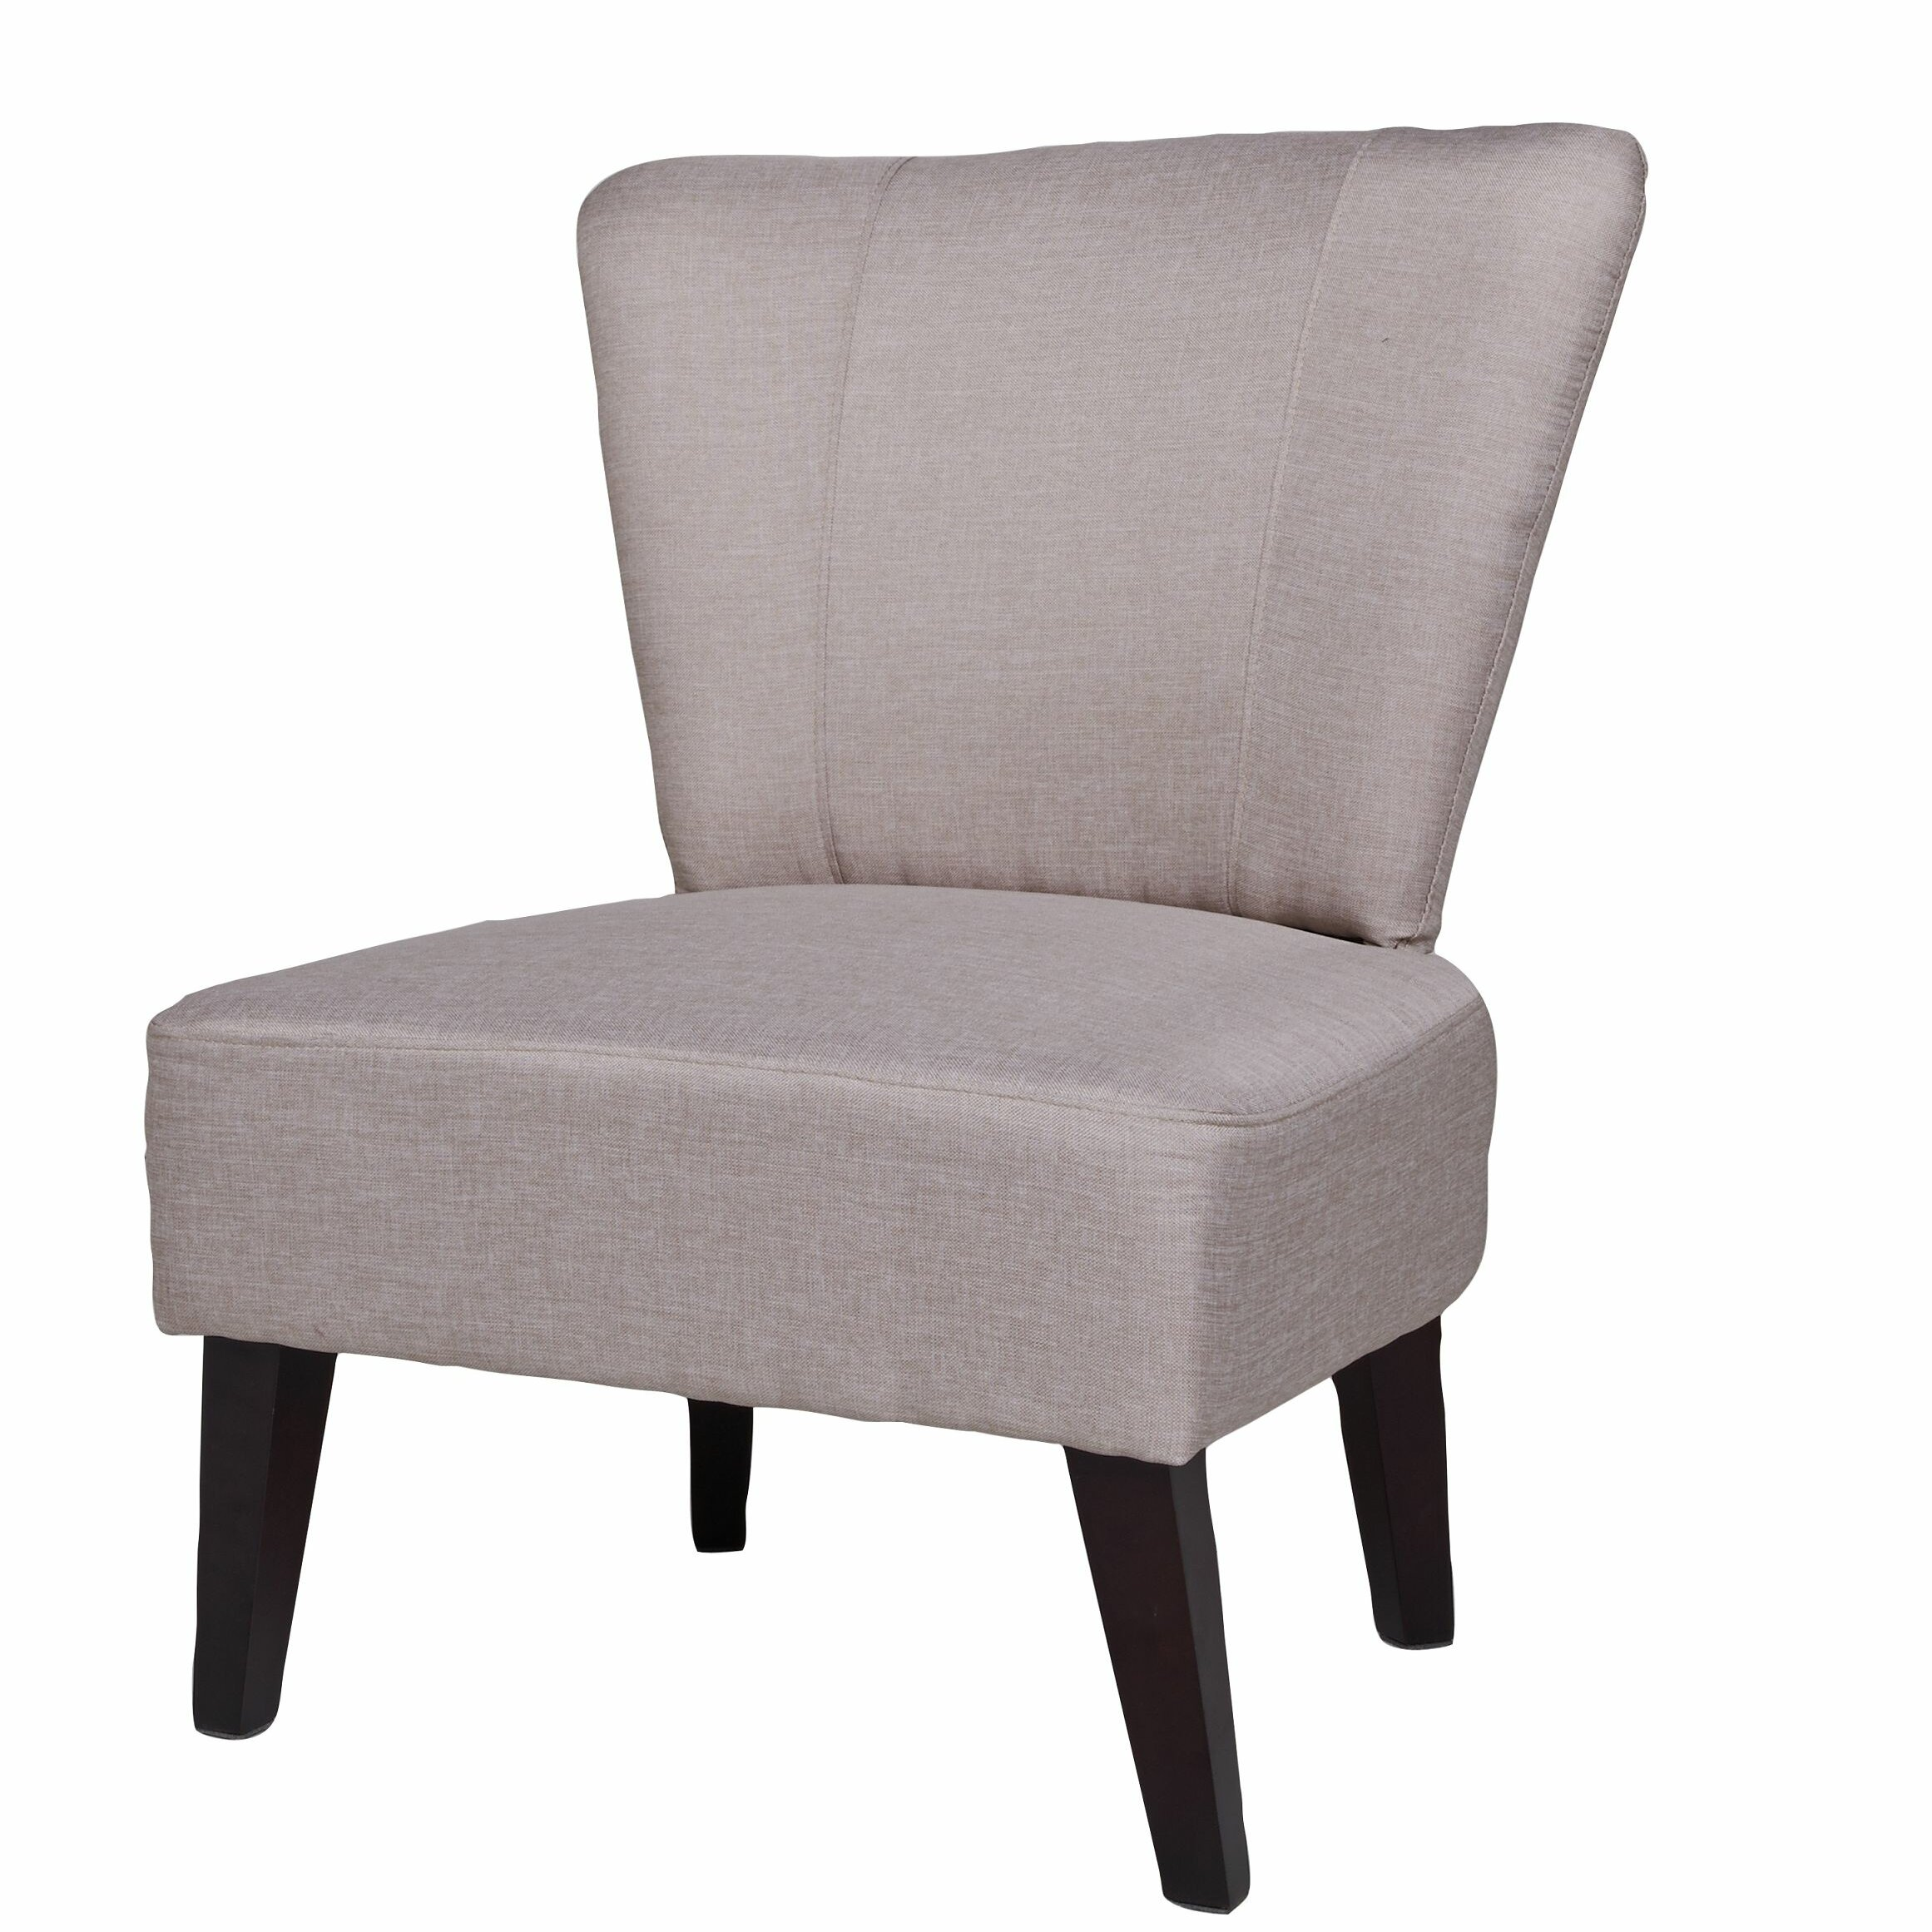 Ebern Designs Monahan Upholstered Dining Chair Wayfair